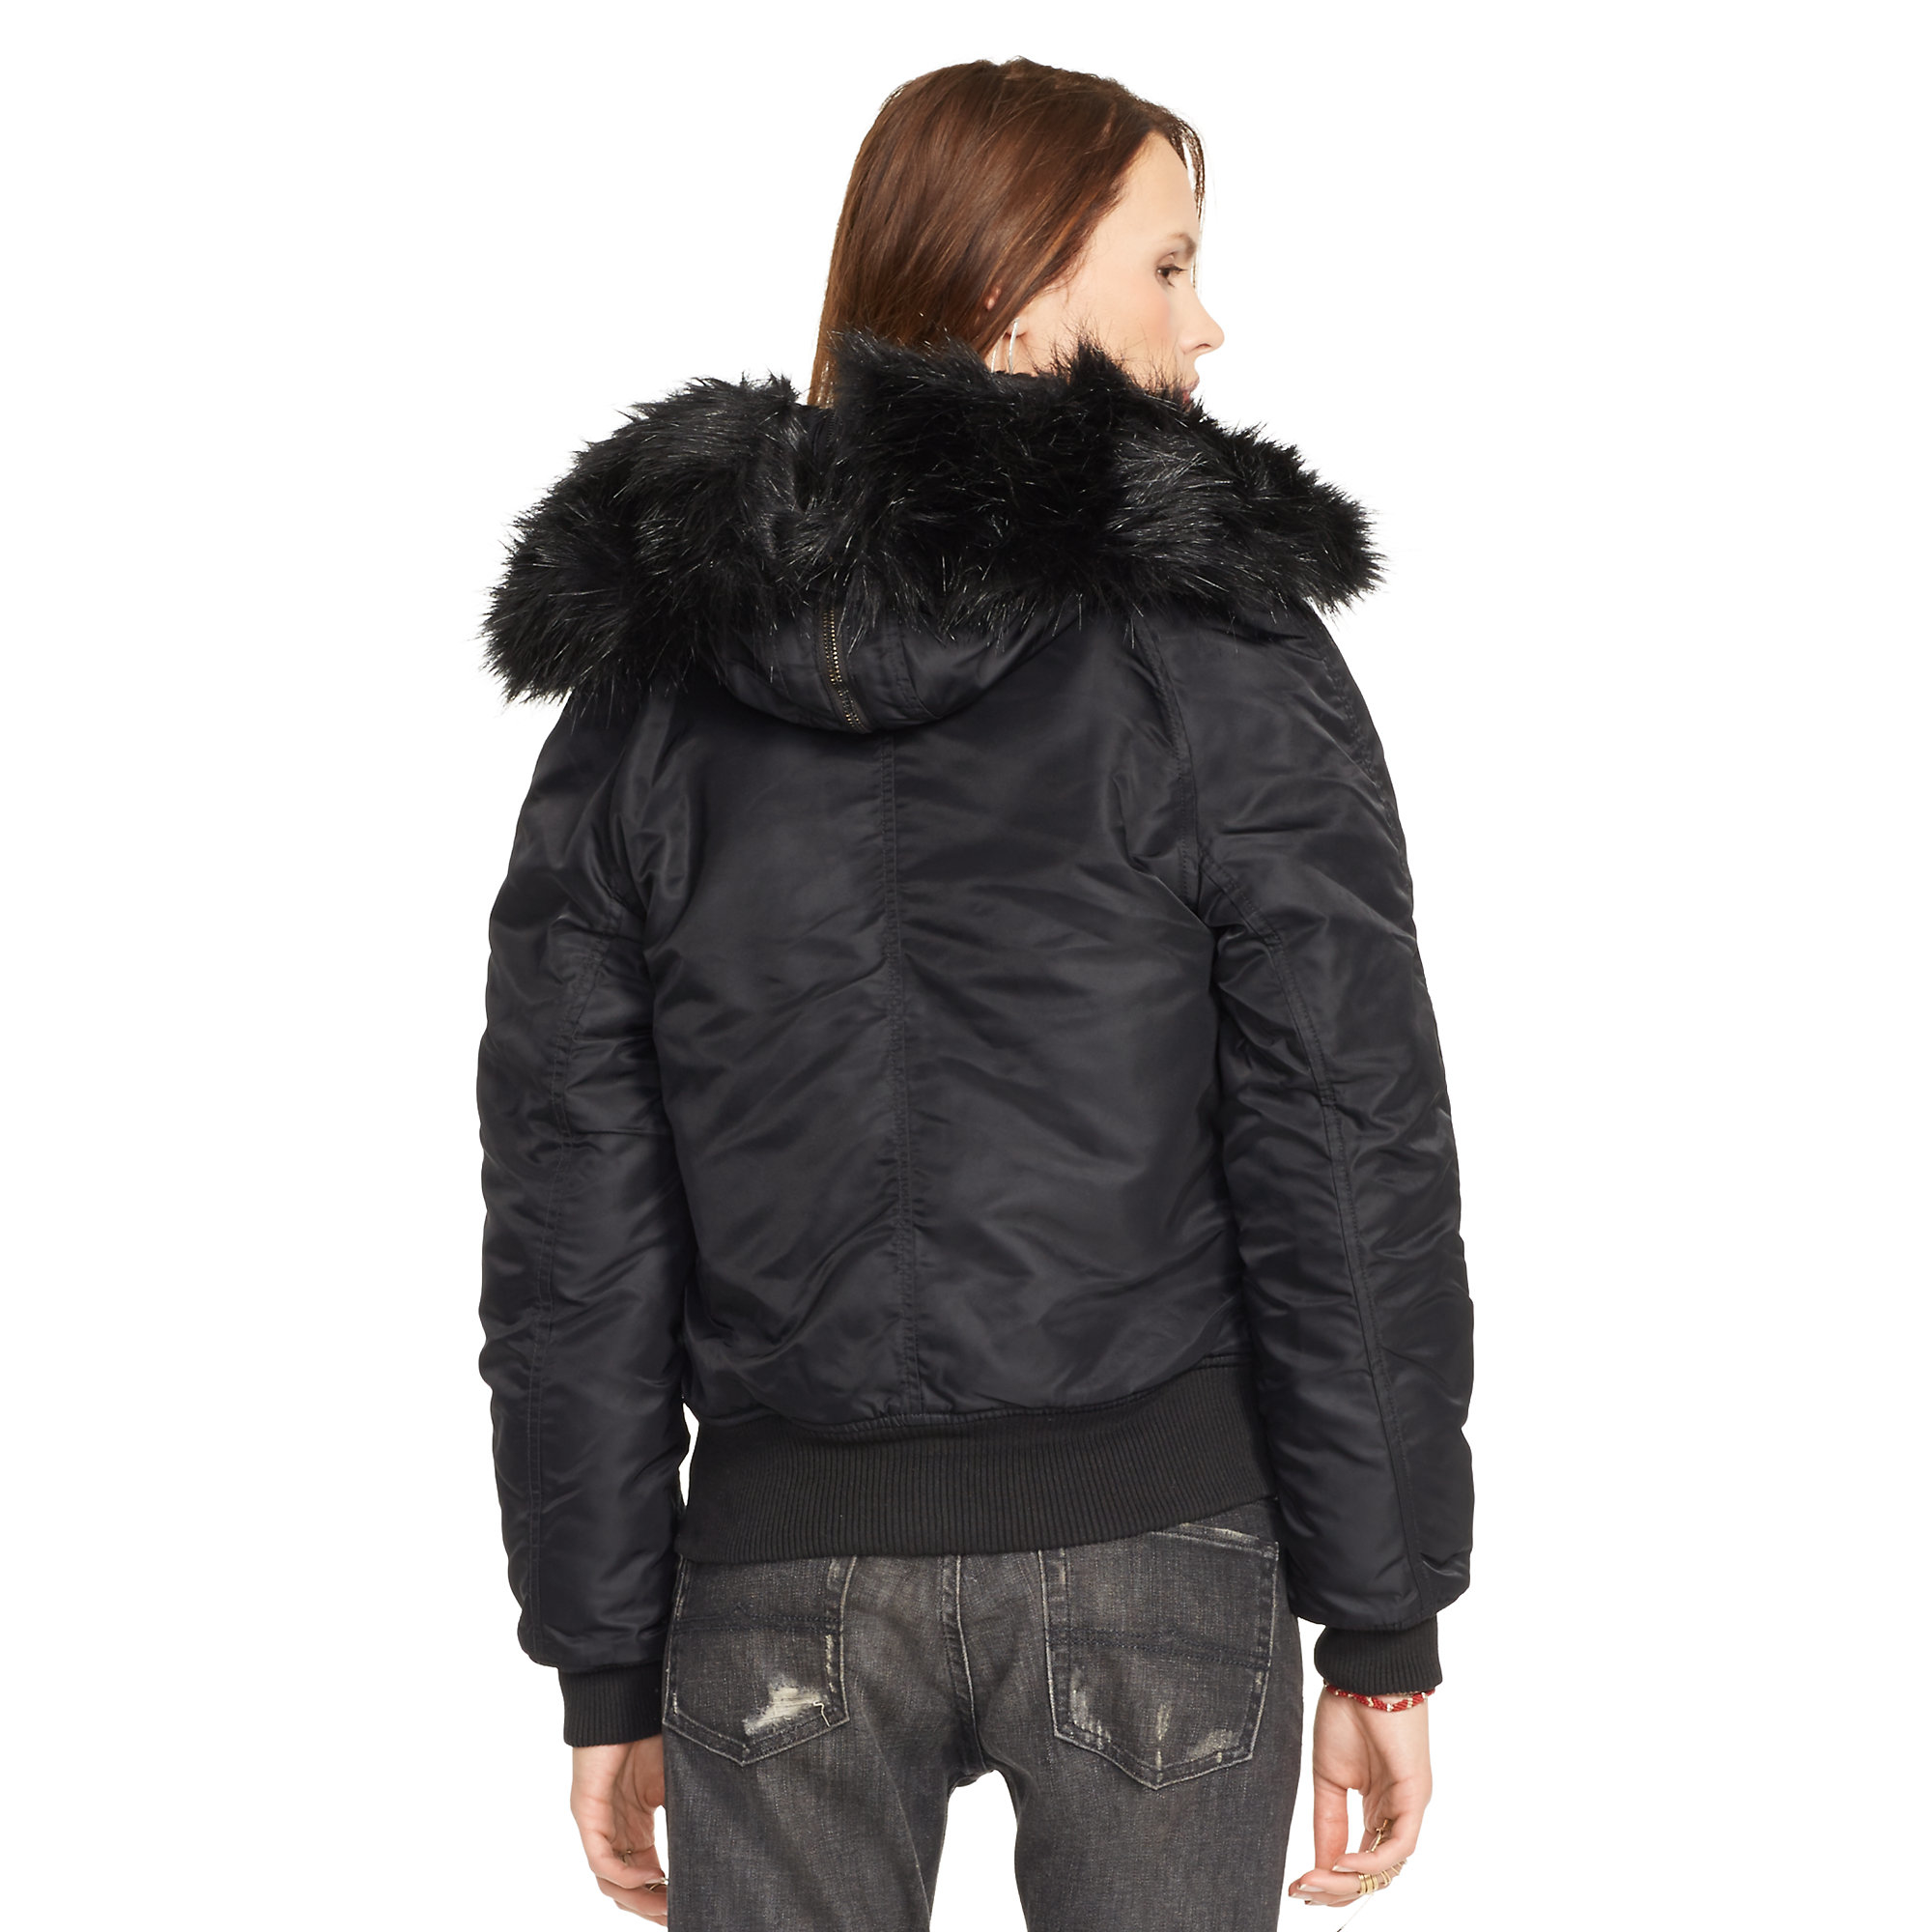 Hooded Bomber Jacket Womens Photo Album - Reikian